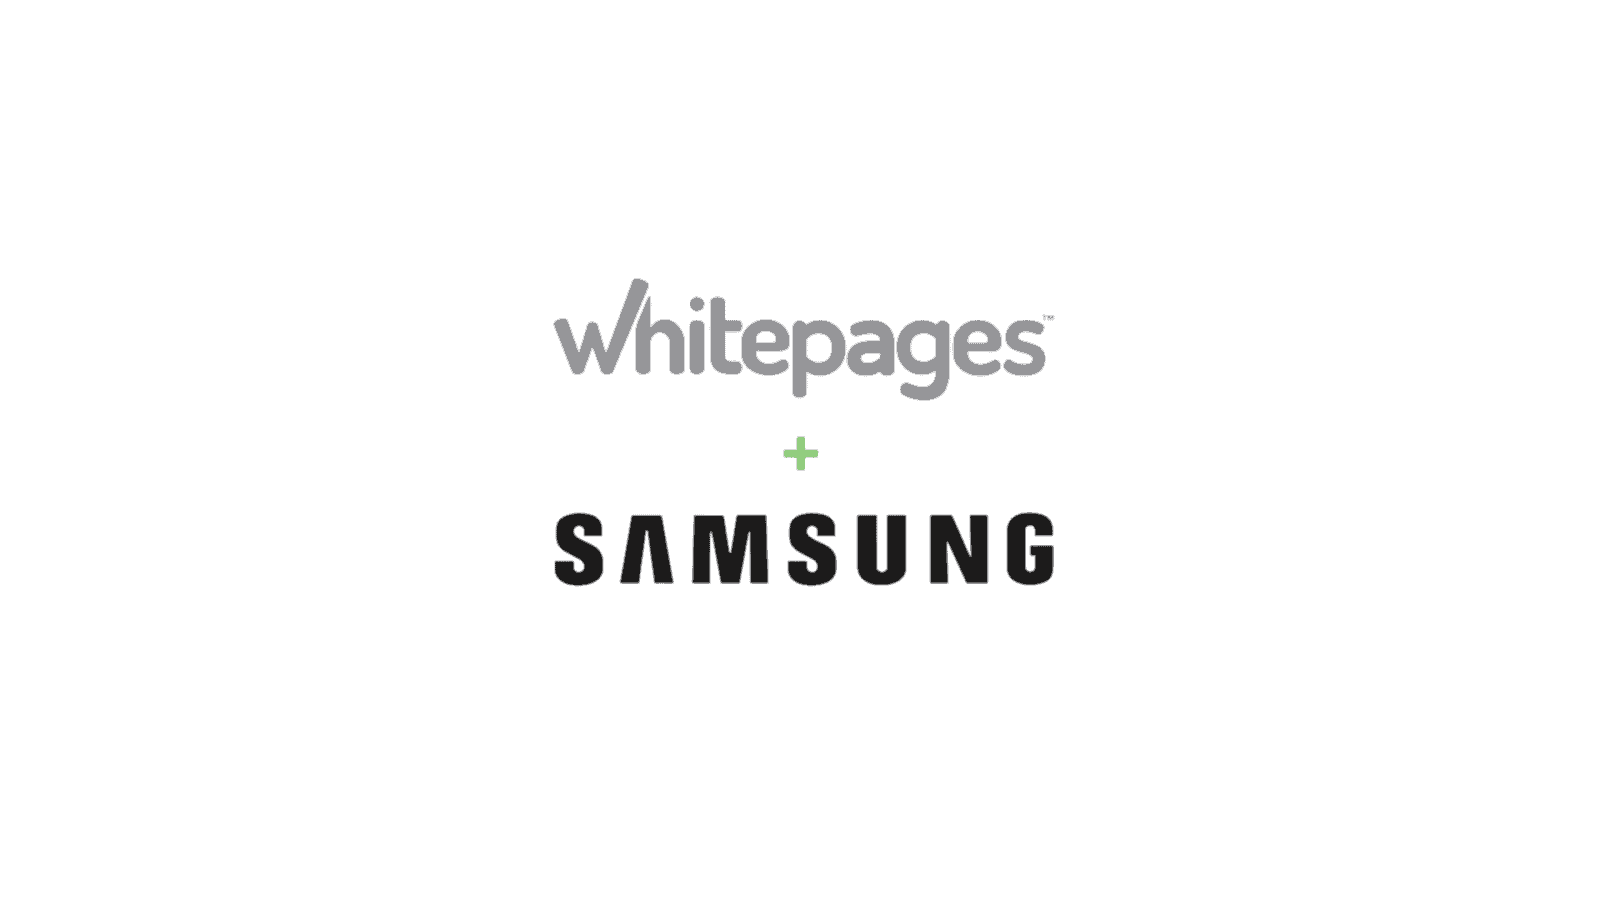 Whitepages and Galaxy S7_1